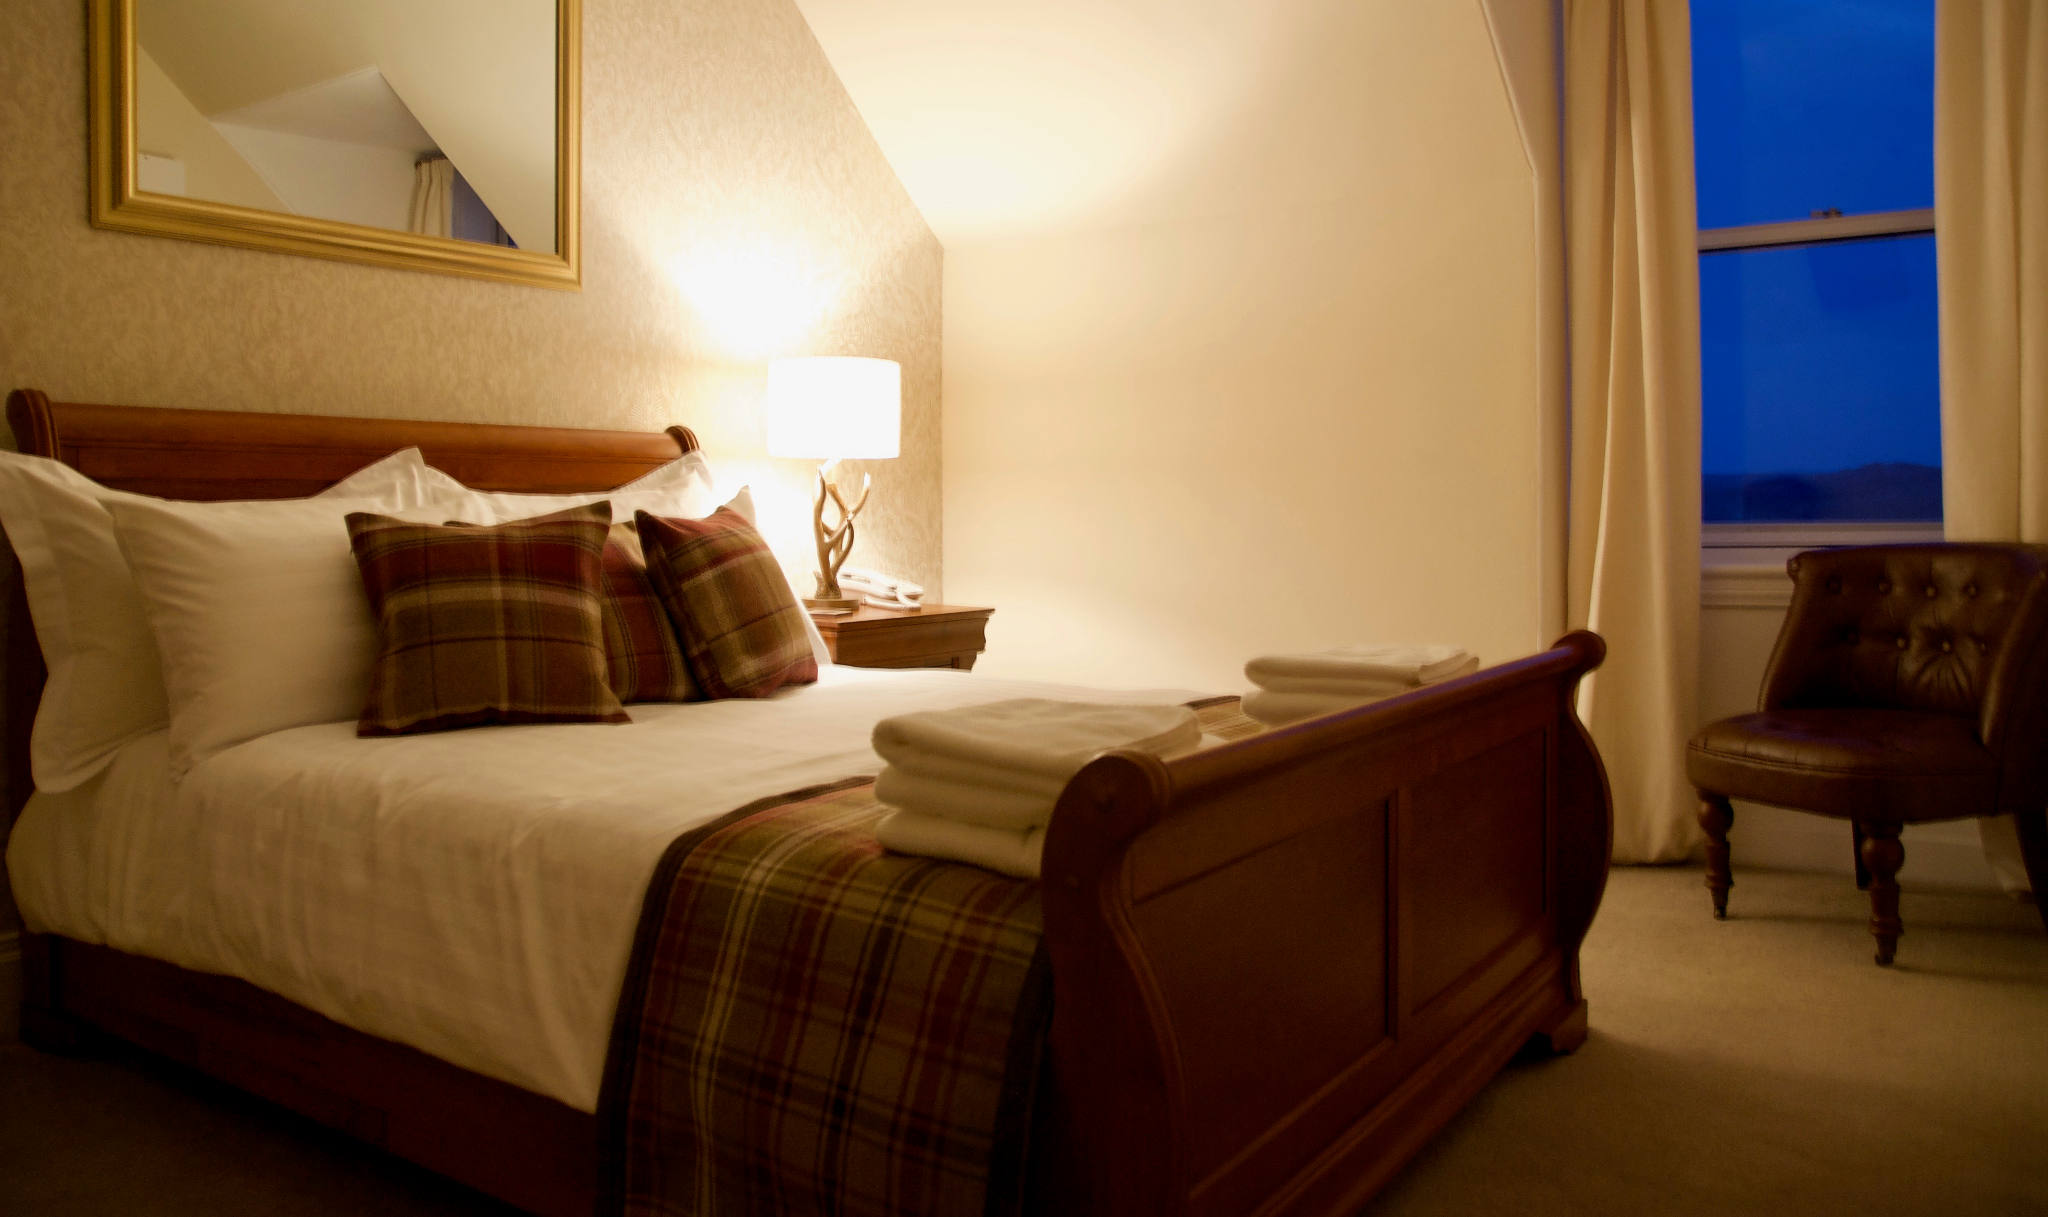 Double bedroom at the Millcroft Hotel, Gairloch